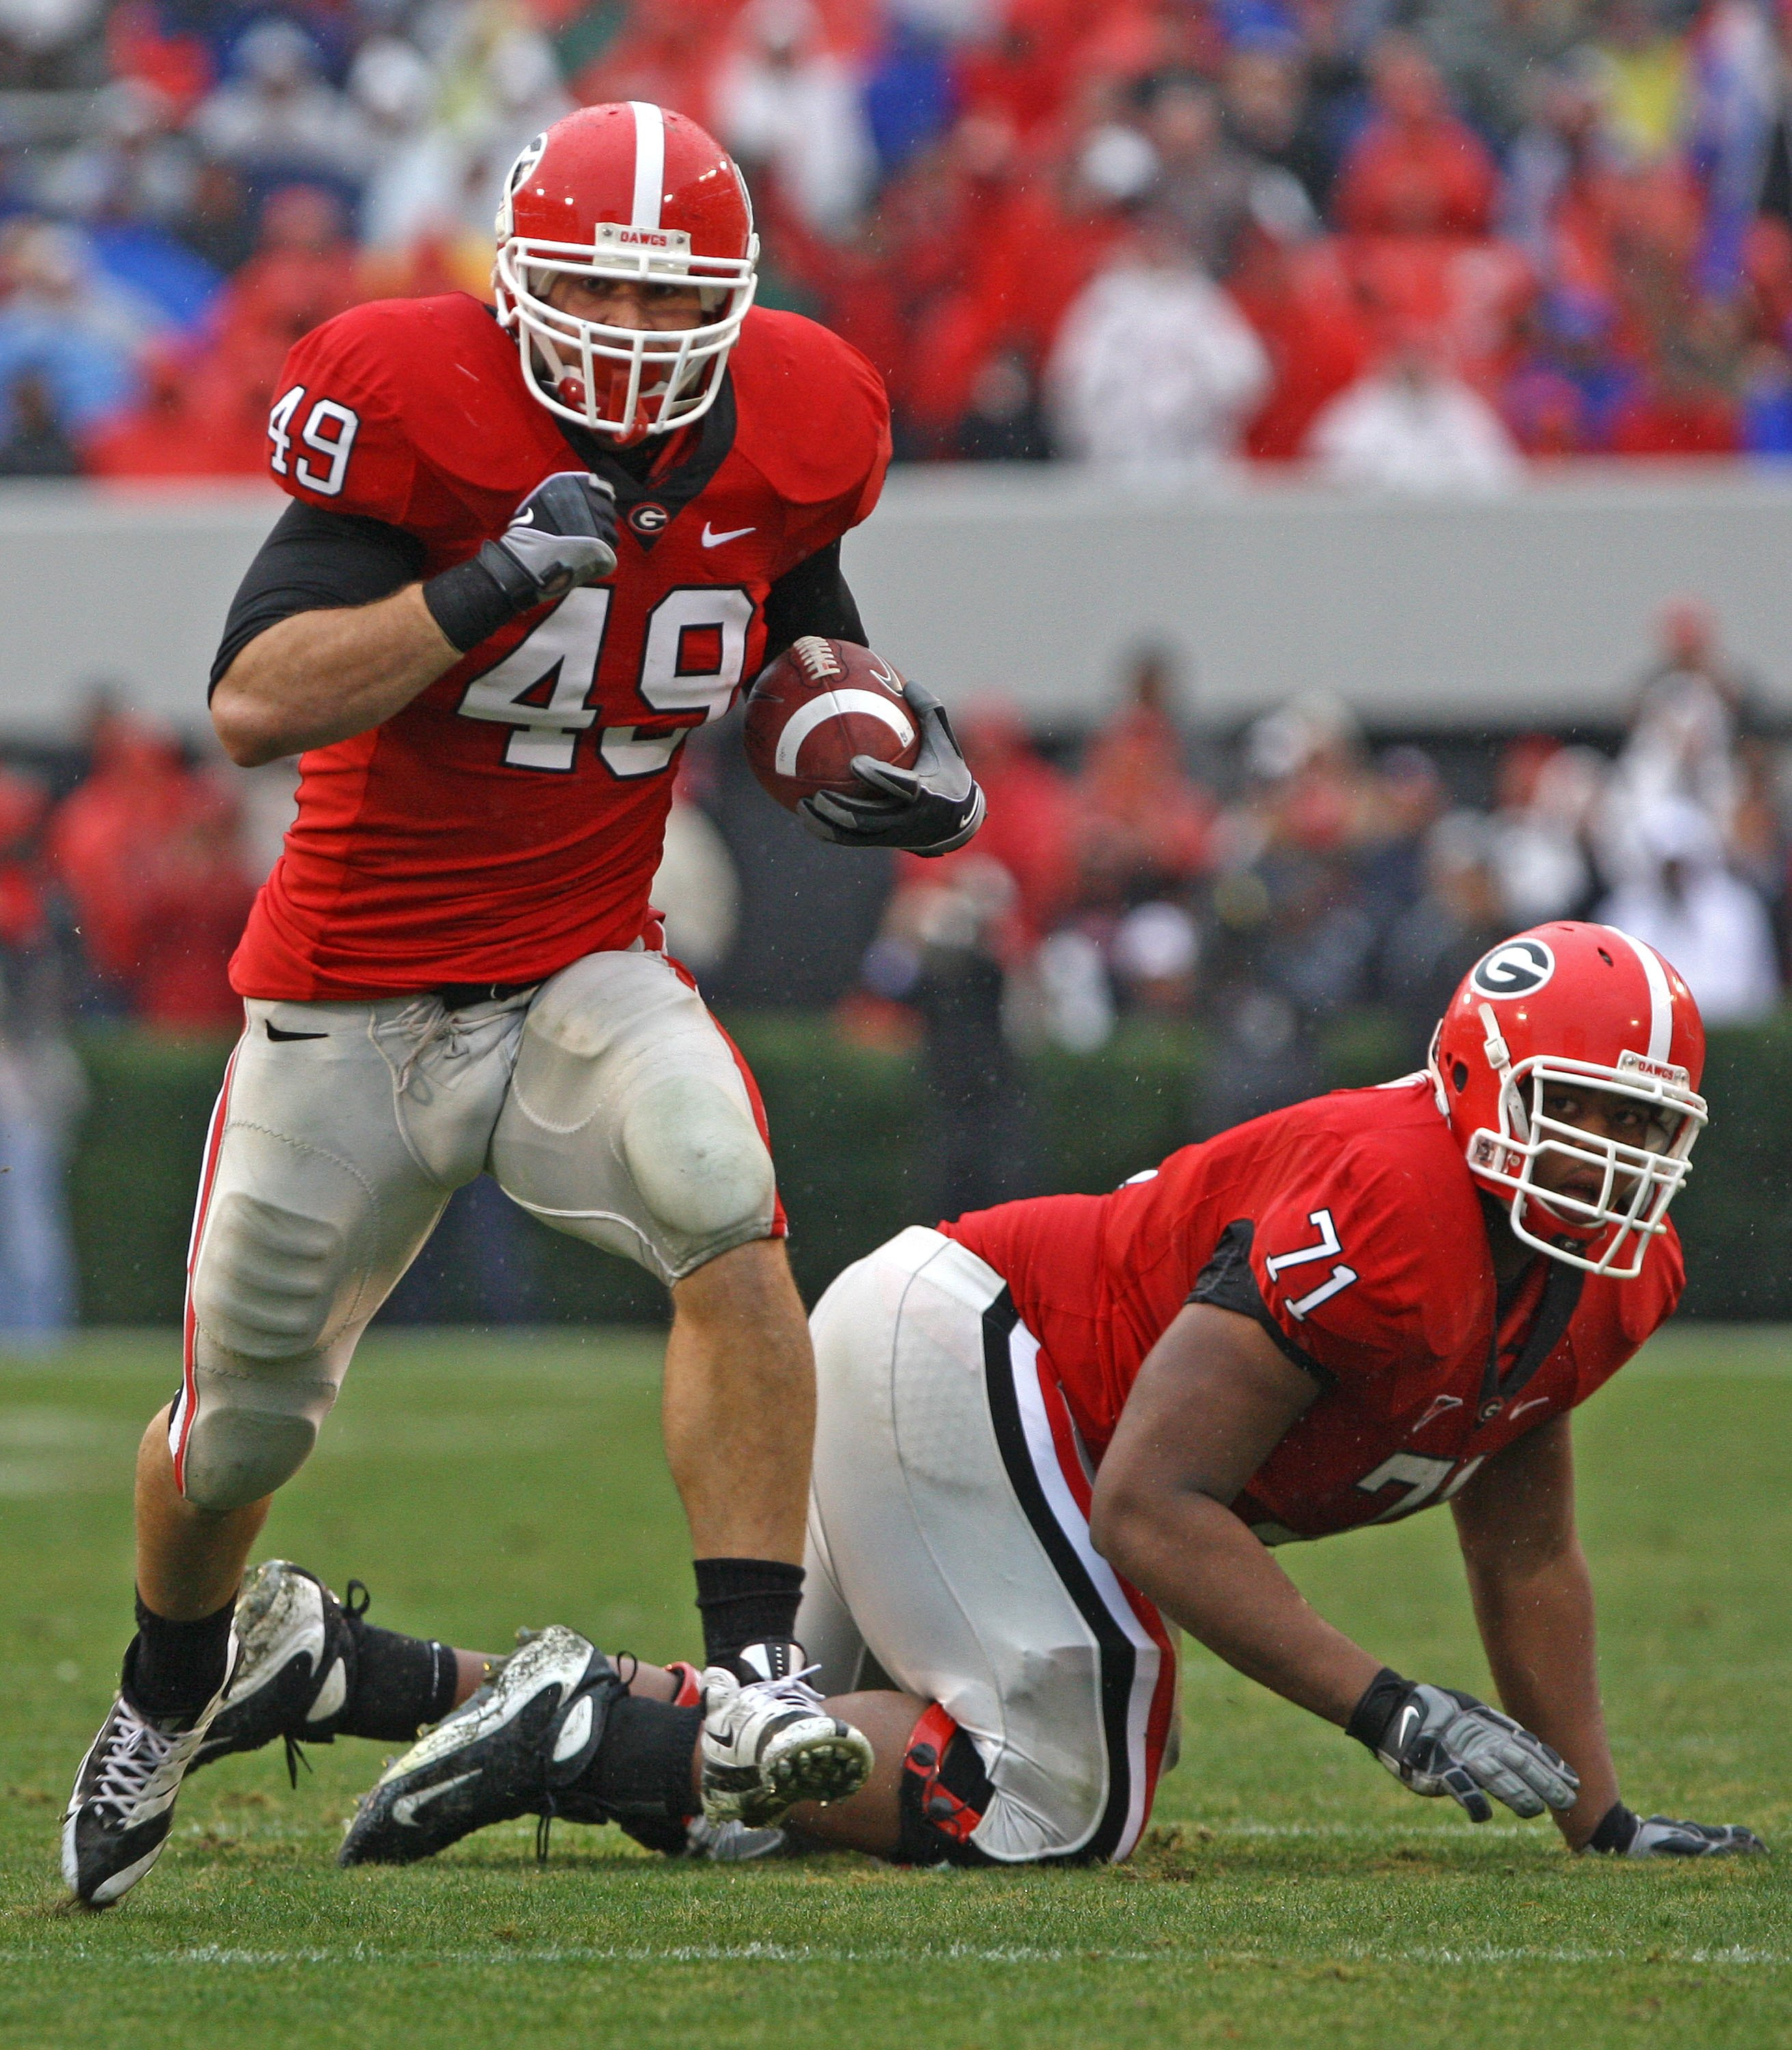 ATHENS, GA - NOVEMBER 29:  Fullback Shaun Chapas #49 of the Georgia Bulldogs runs upfield as teammate and offensive lineman Cordy Glenn watches during the game against the Georgia Tech Yellow Jackets at Sanford Stadium on November 29, 2008 in Athens, Geor